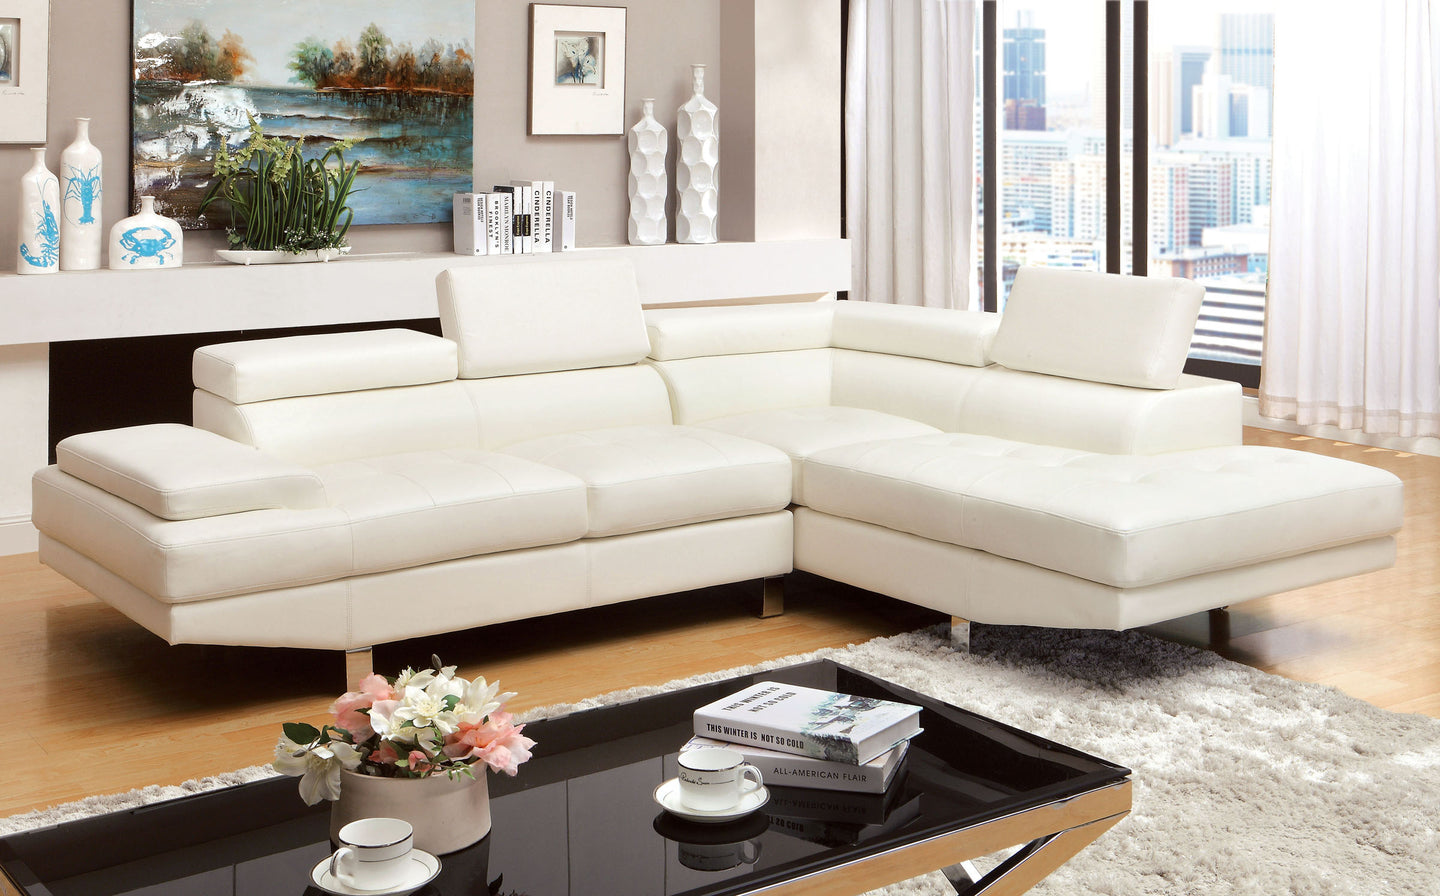 Furniture Of America Kemina White Bonded Leather Finish Sectional Sofa Couch